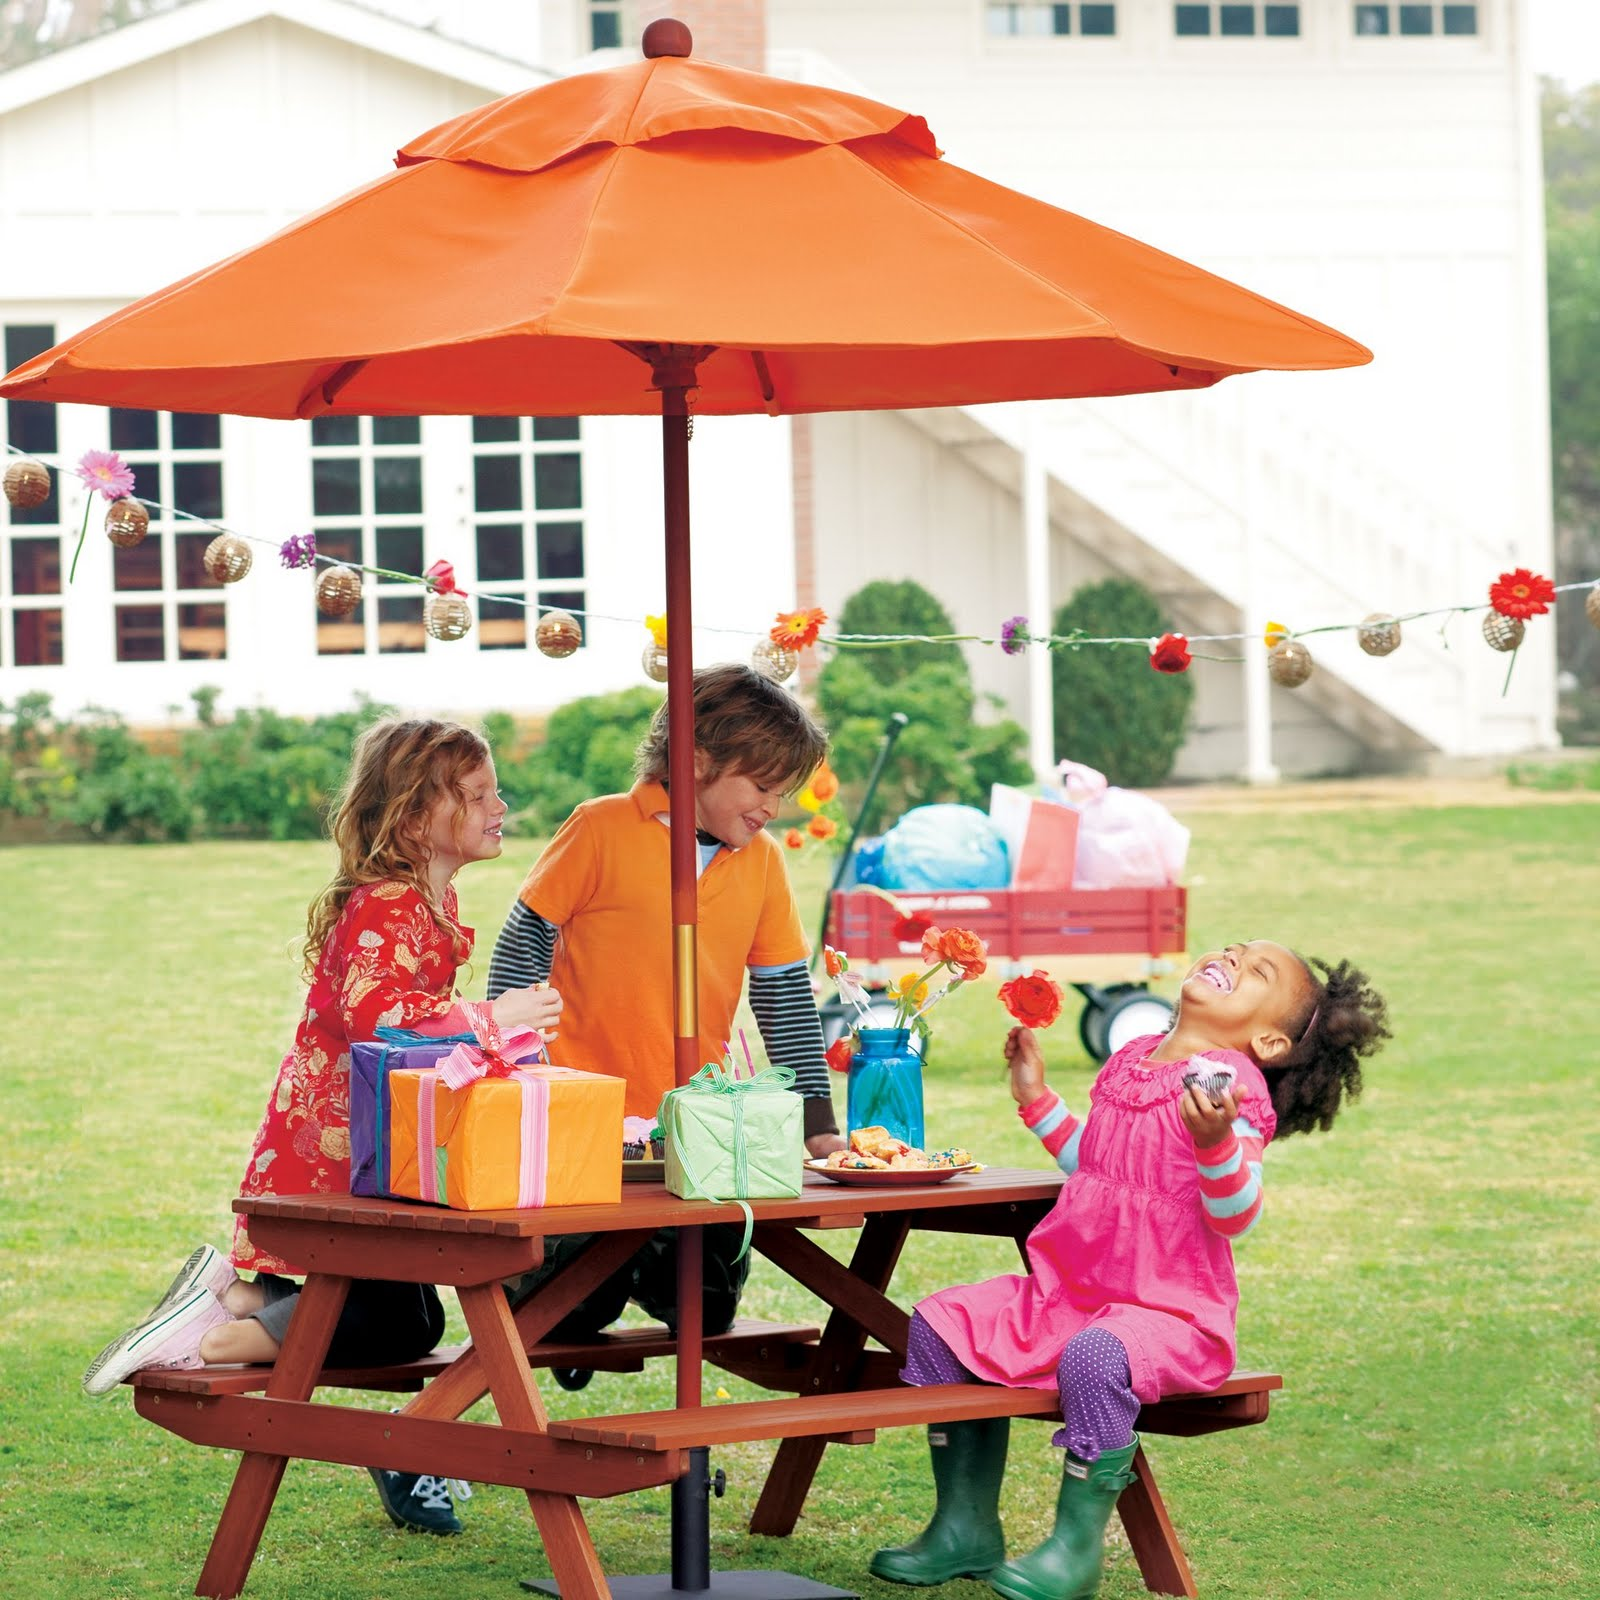 Picnic Table - American Plastic Toy - Toys R Us